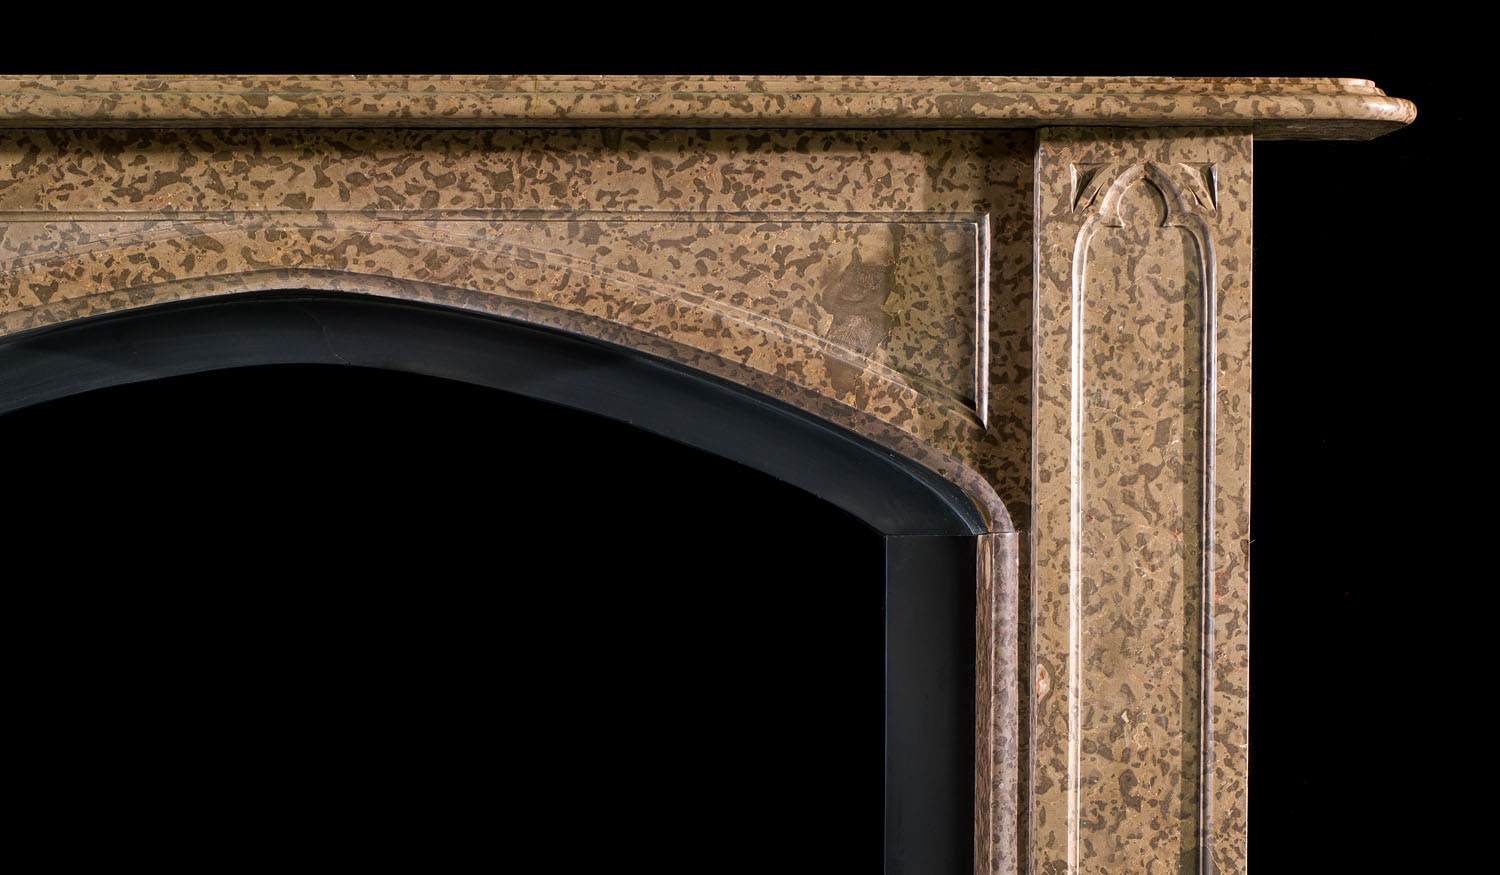 An antique Gothic Revival Coral Fossil Fireplace Surround